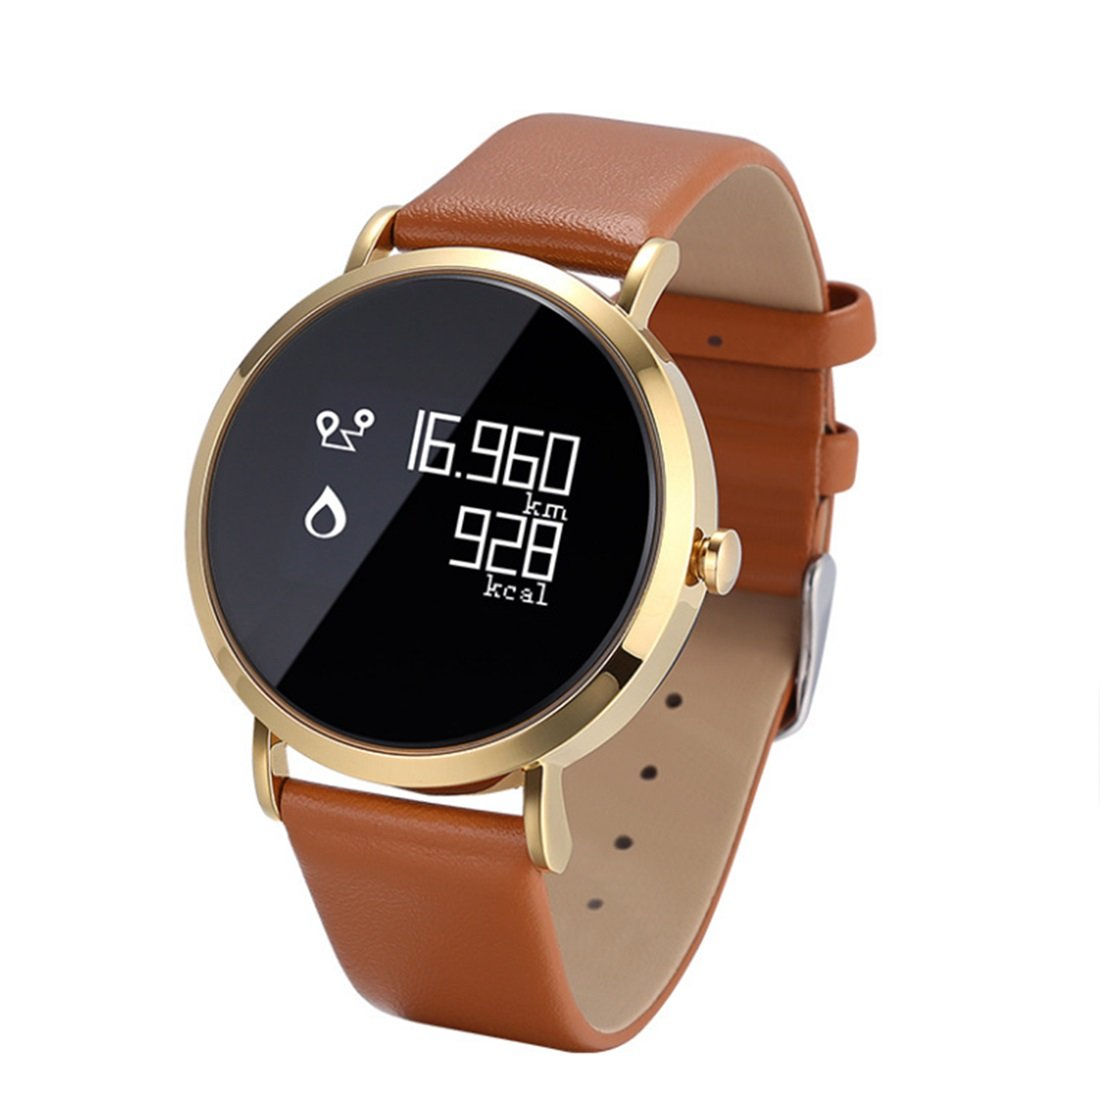 HDWY Smart Watch Leather Fitness Heart Rate Monitor Tracker Smart Bracelet Activity Bluetooth Pedometer With Sleep Monitor For Adults Kids (Color : Gold)